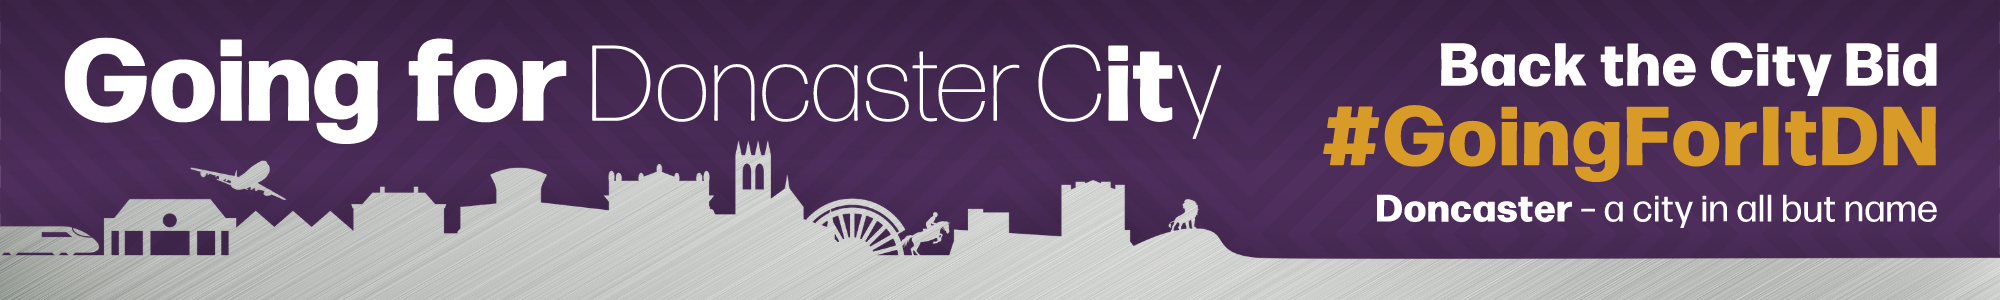 Back the bid for Doncaster to gain city status to celebrate the Queen's Platinum Jubilee in 2022